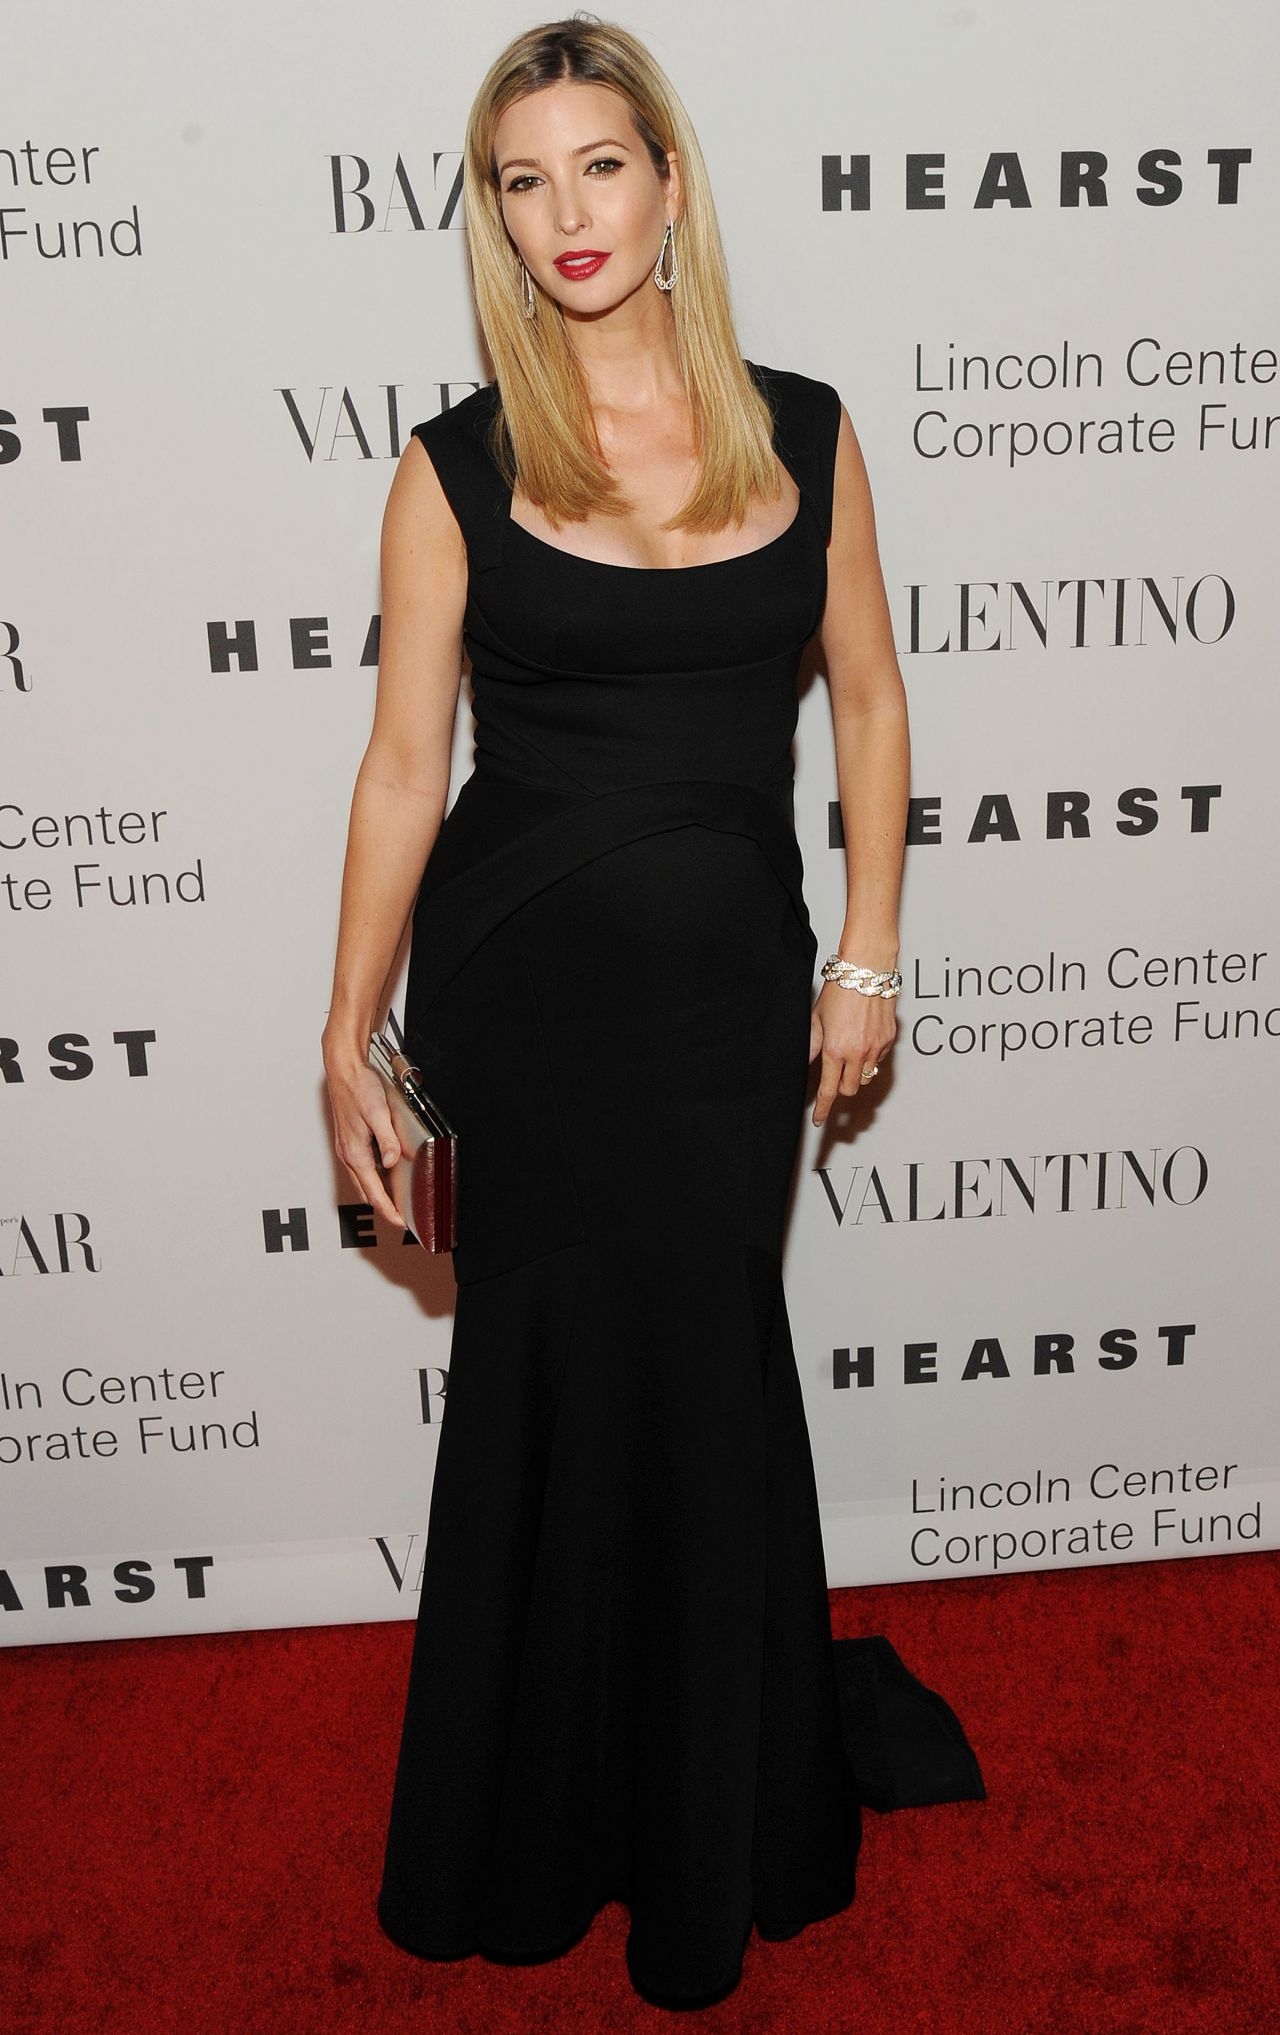 ivanka trump an evening honoring valentino gala in new york city 12 7 2015. Black Bedroom Furniture Sets. Home Design Ideas